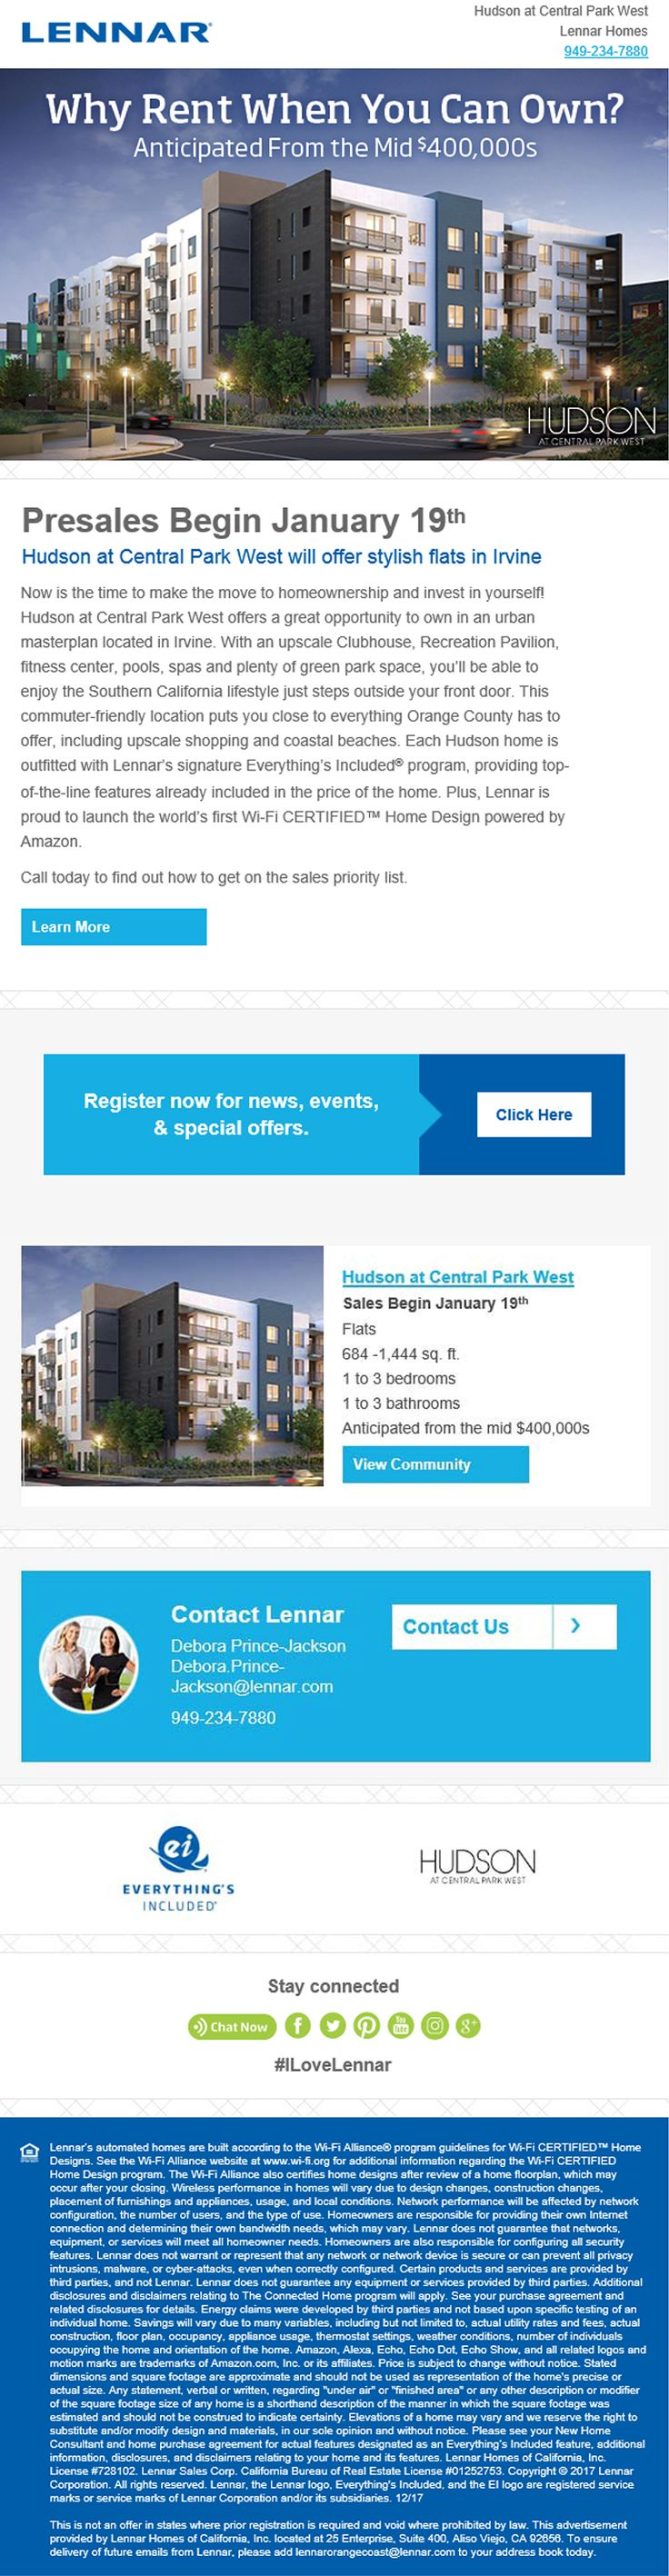 New Homes for Sale in Irvine, California  Stop Renting!  New Flats In Irvine From The Mid $400s - Sales Begin January 19th!  Hudson at Central Park West  |  Urban Masterplan  |  Clubhouse, Recreation Pavilion, Fitness Center, Pools, Spas, & Plenty of Green Space    684 - 1,444 sq. ft.  |  1 - 3 Bedrooms  | 1 to 3 Bathrooms  |  Outdoor Patios  |  Gourmet Kitchens  |  Master Suites  https://www.lennar.com/new-homes/california/orange-county/irvine/central-park-west/hudson